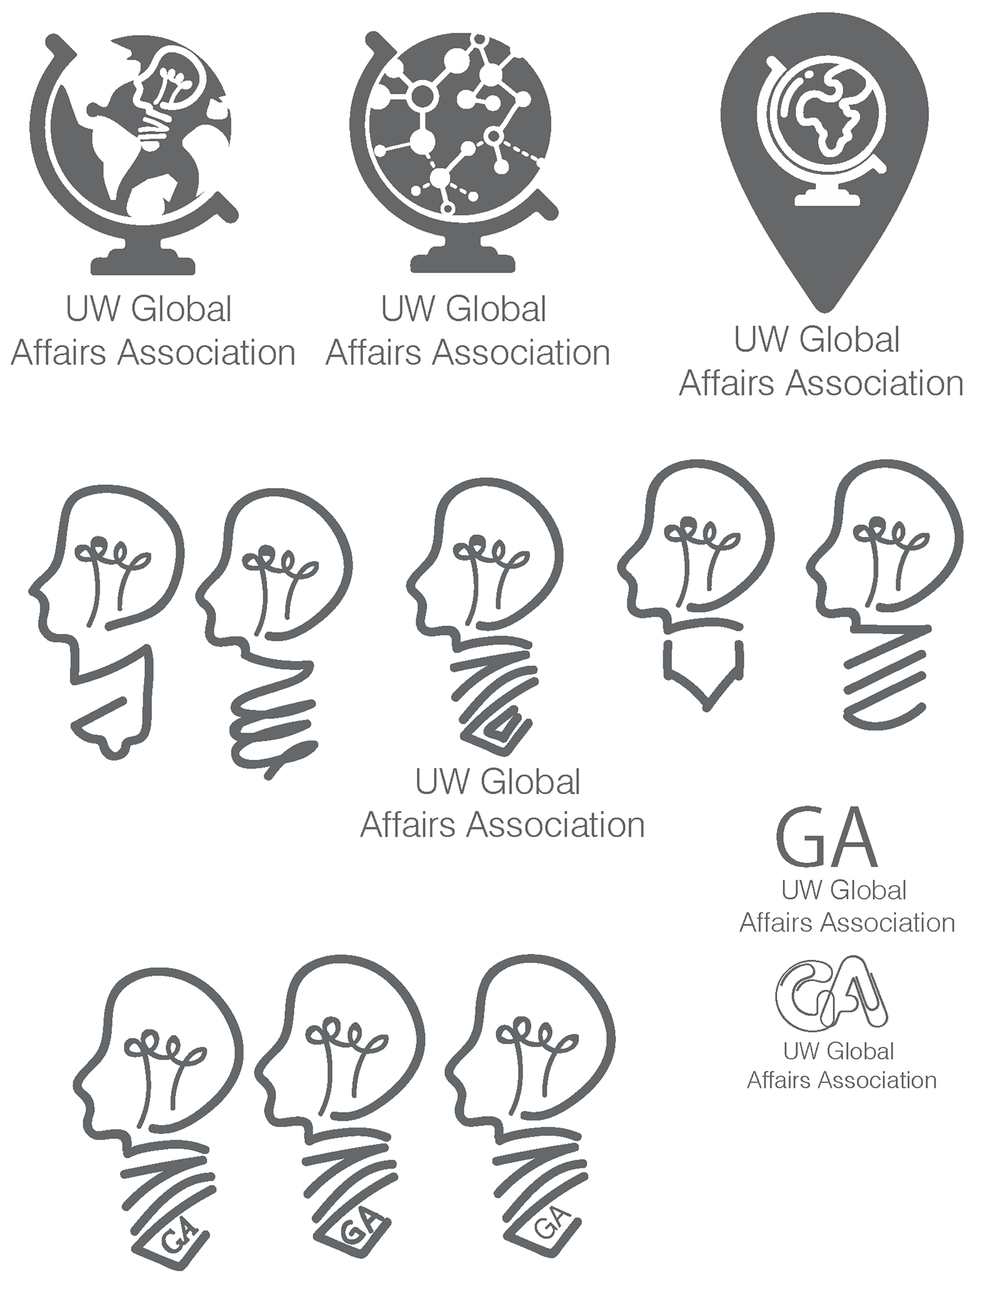 UW Global Affair logo ideas